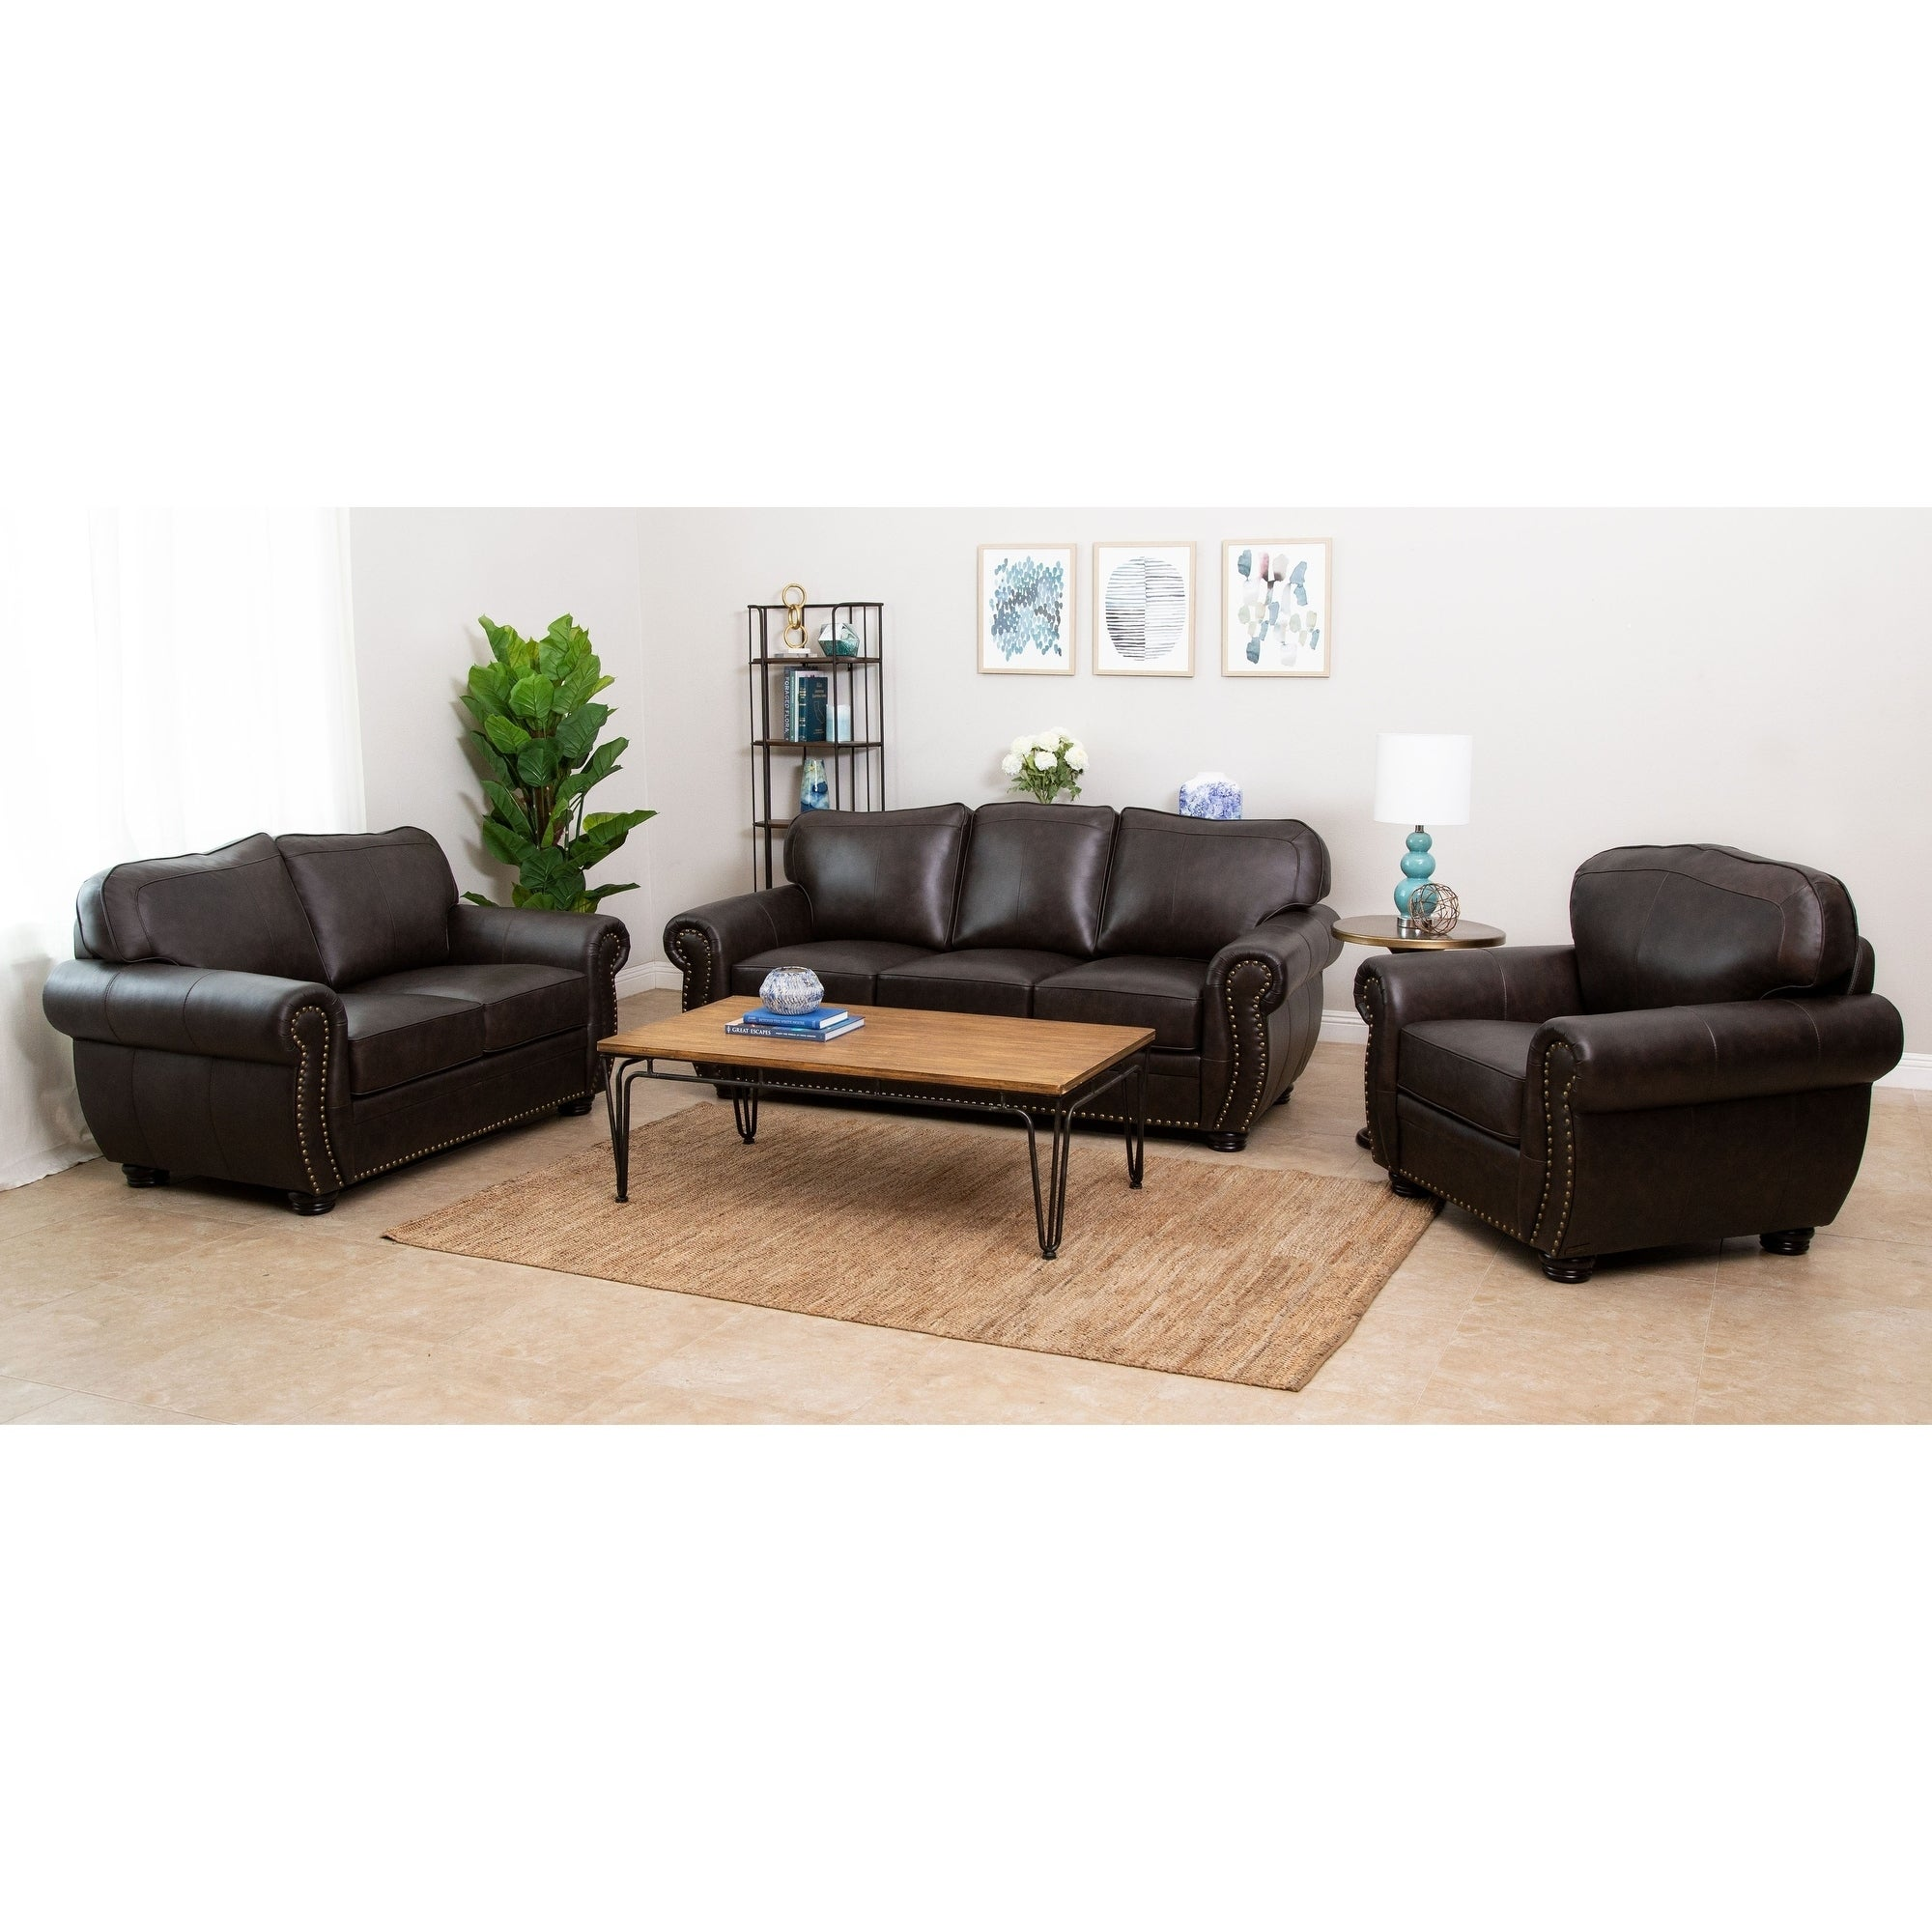 beautiful leather sofa loveseat armchair set chair